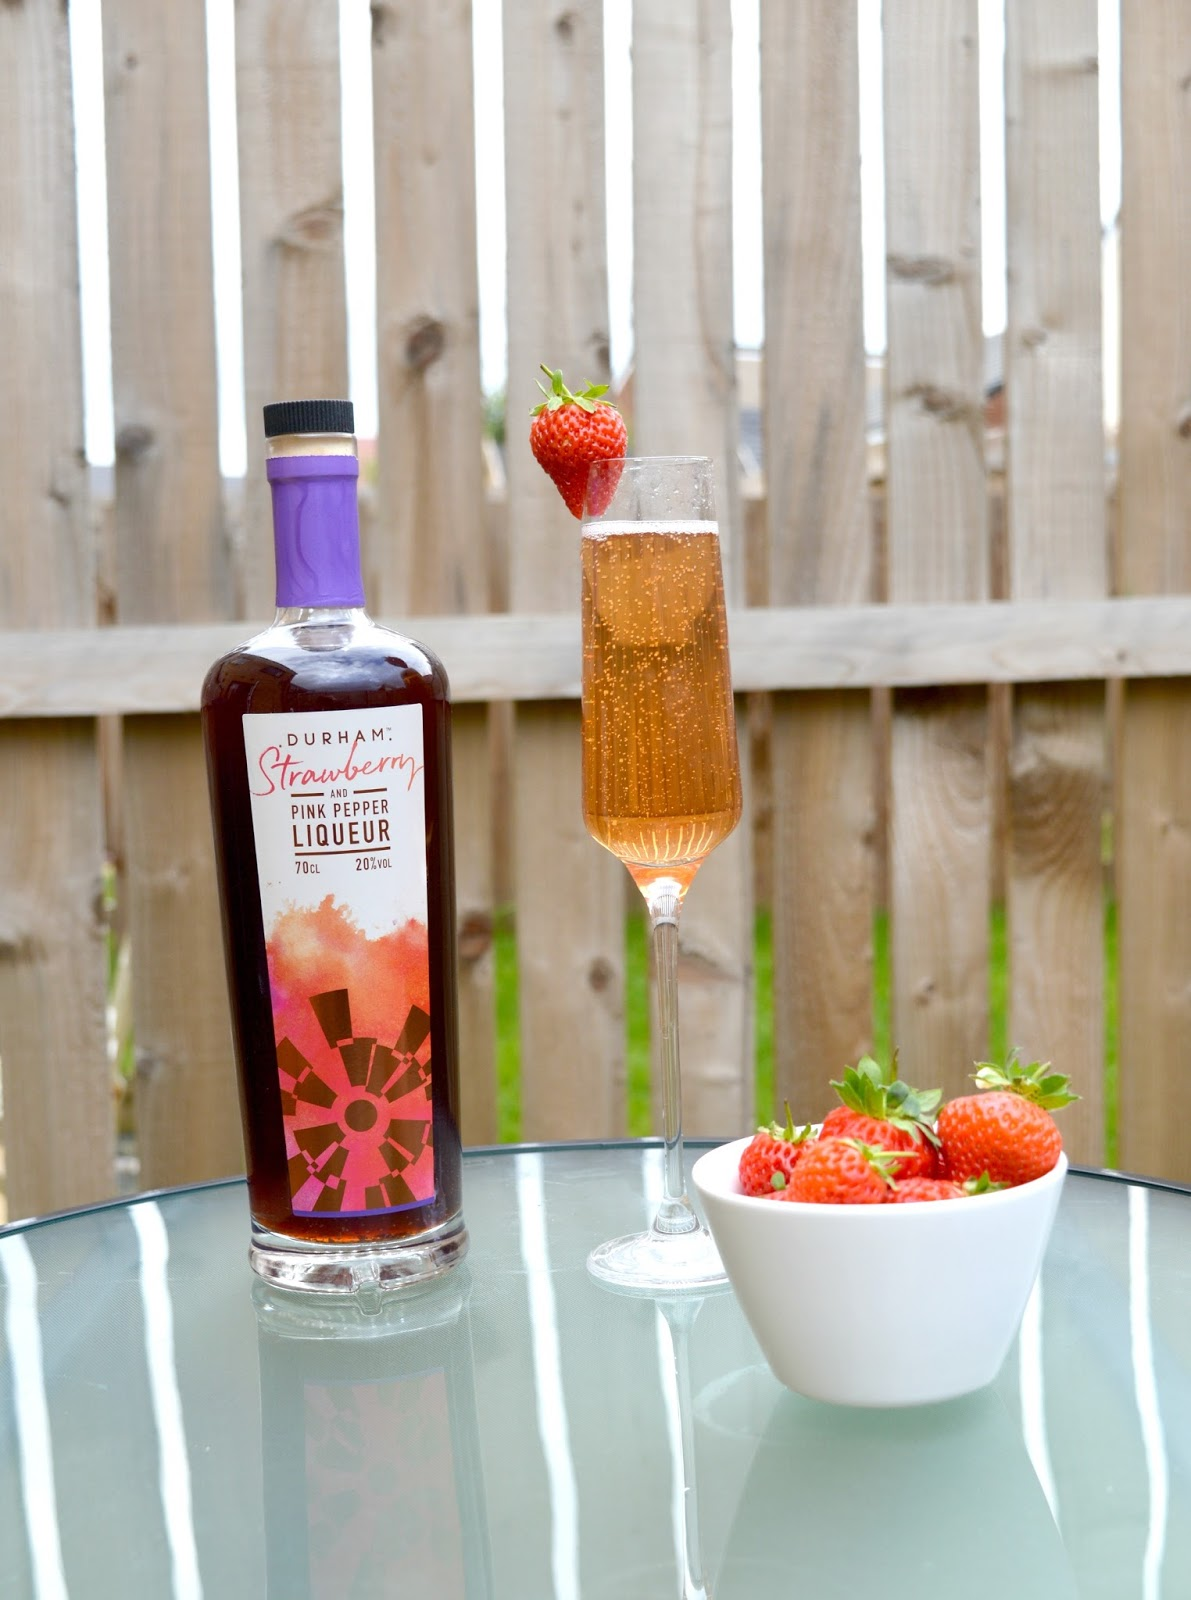 Durham Distillery - Strawberry and Pink Pepper Liqueur